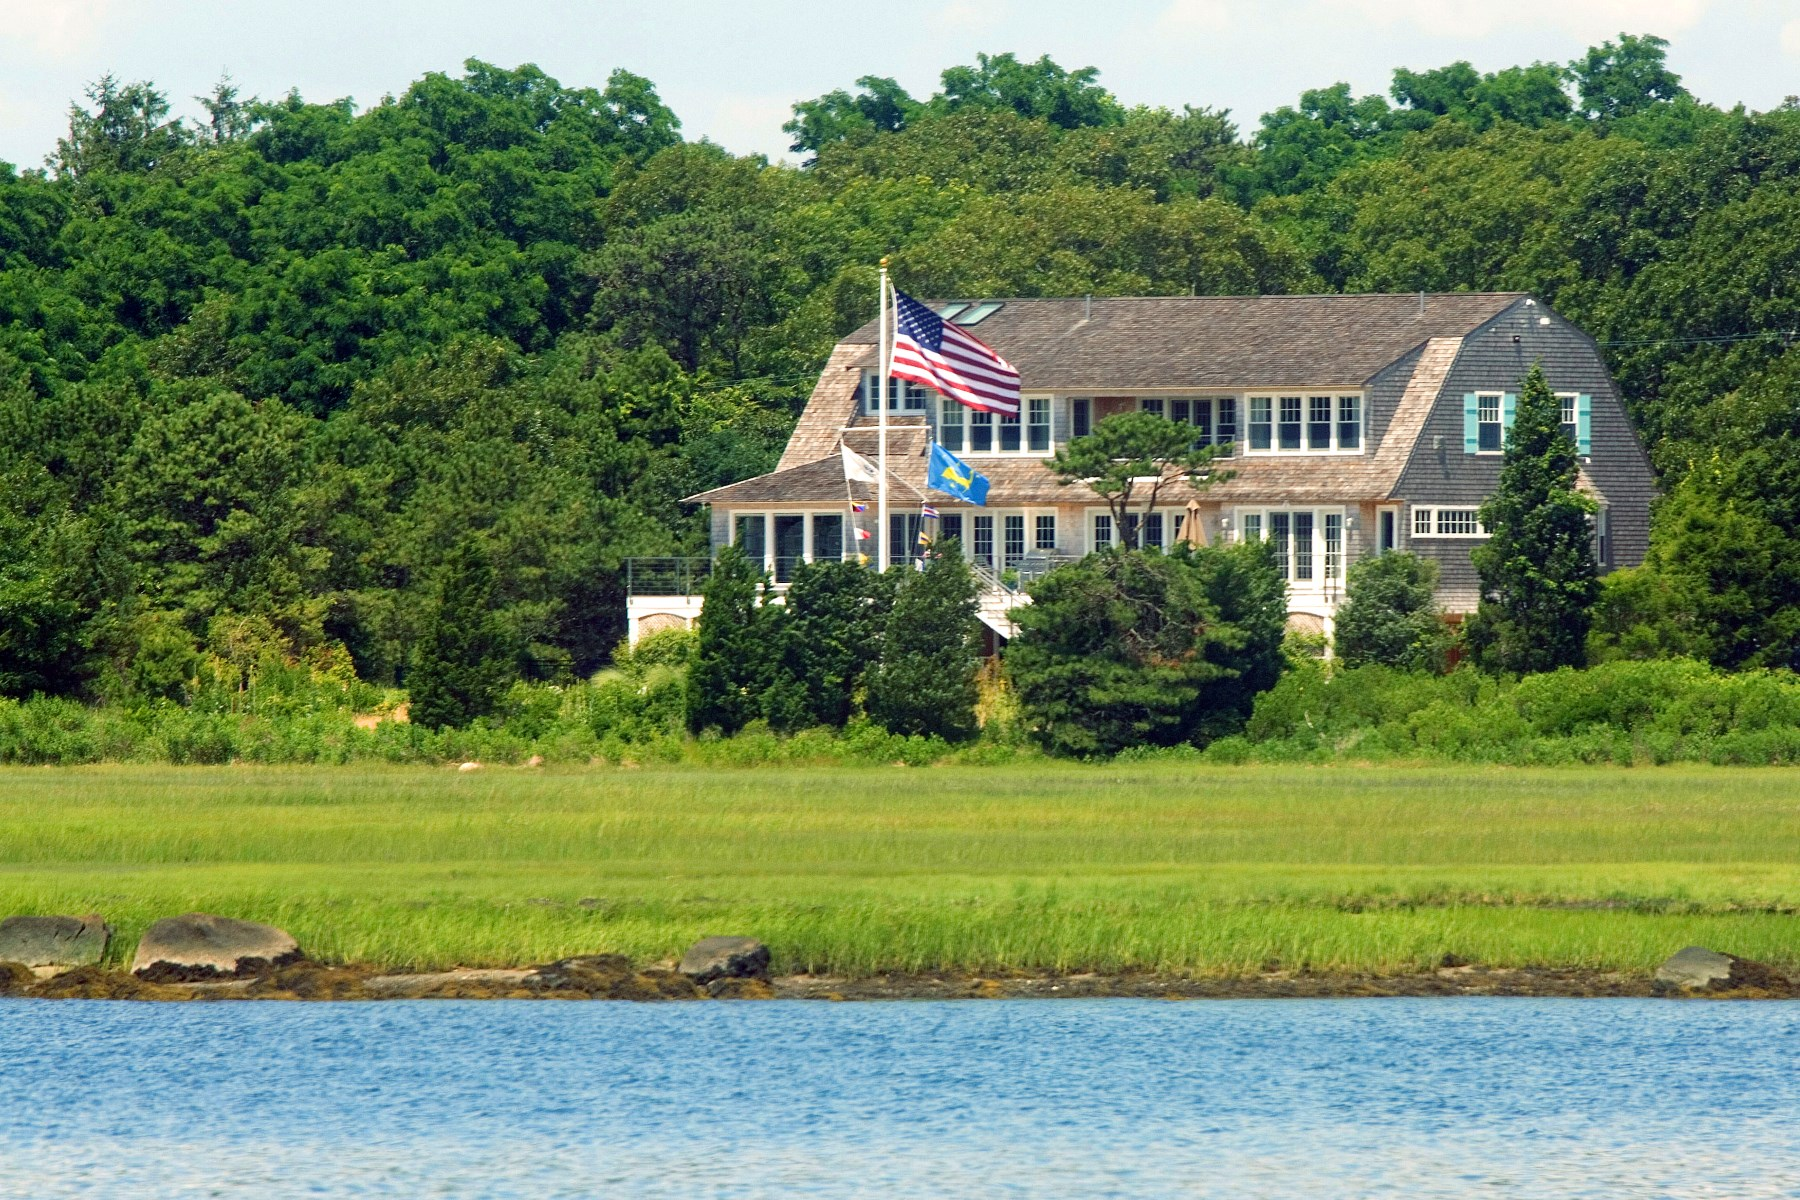 Single Family Home for Sale at Stylish Cape Cod Living 165 Wings Neck Road Pocasset, Massachusetts, 02559 United States